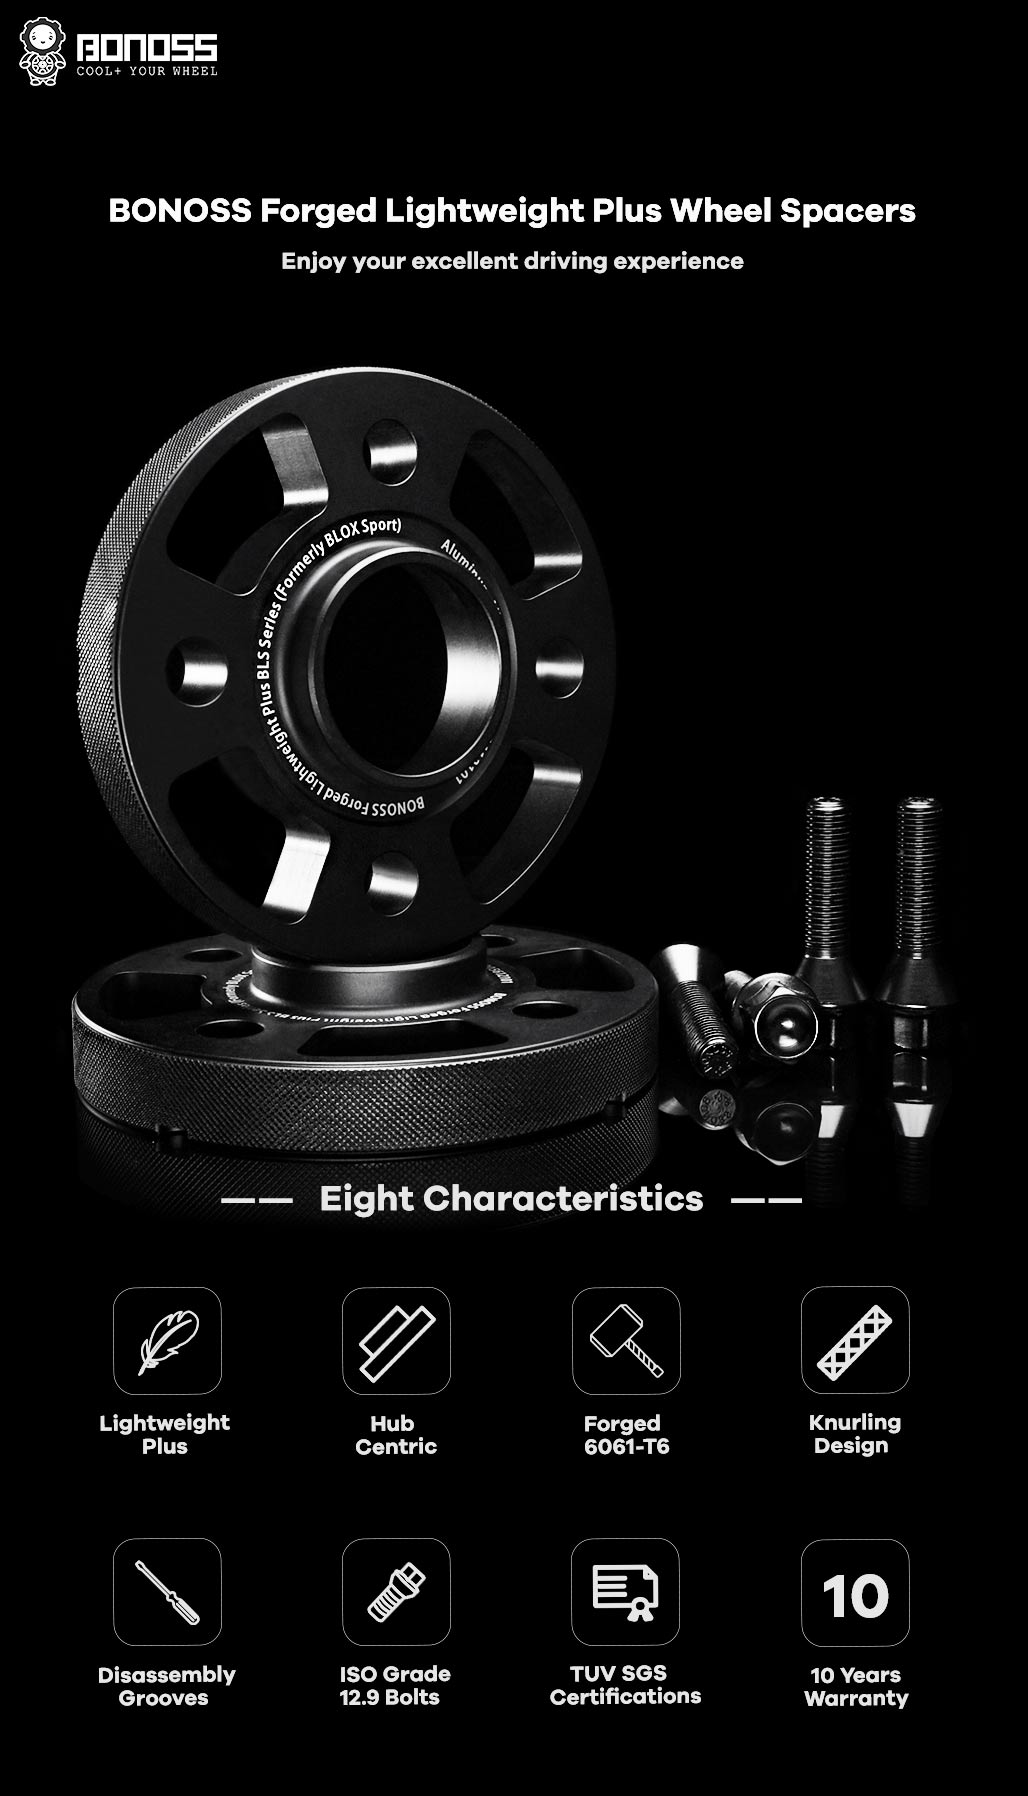 AL6061-T6-BONOSS-forged-lightweight-plus-hubcentric-4x100-56.1-wheel-spacers-12x1.5-1